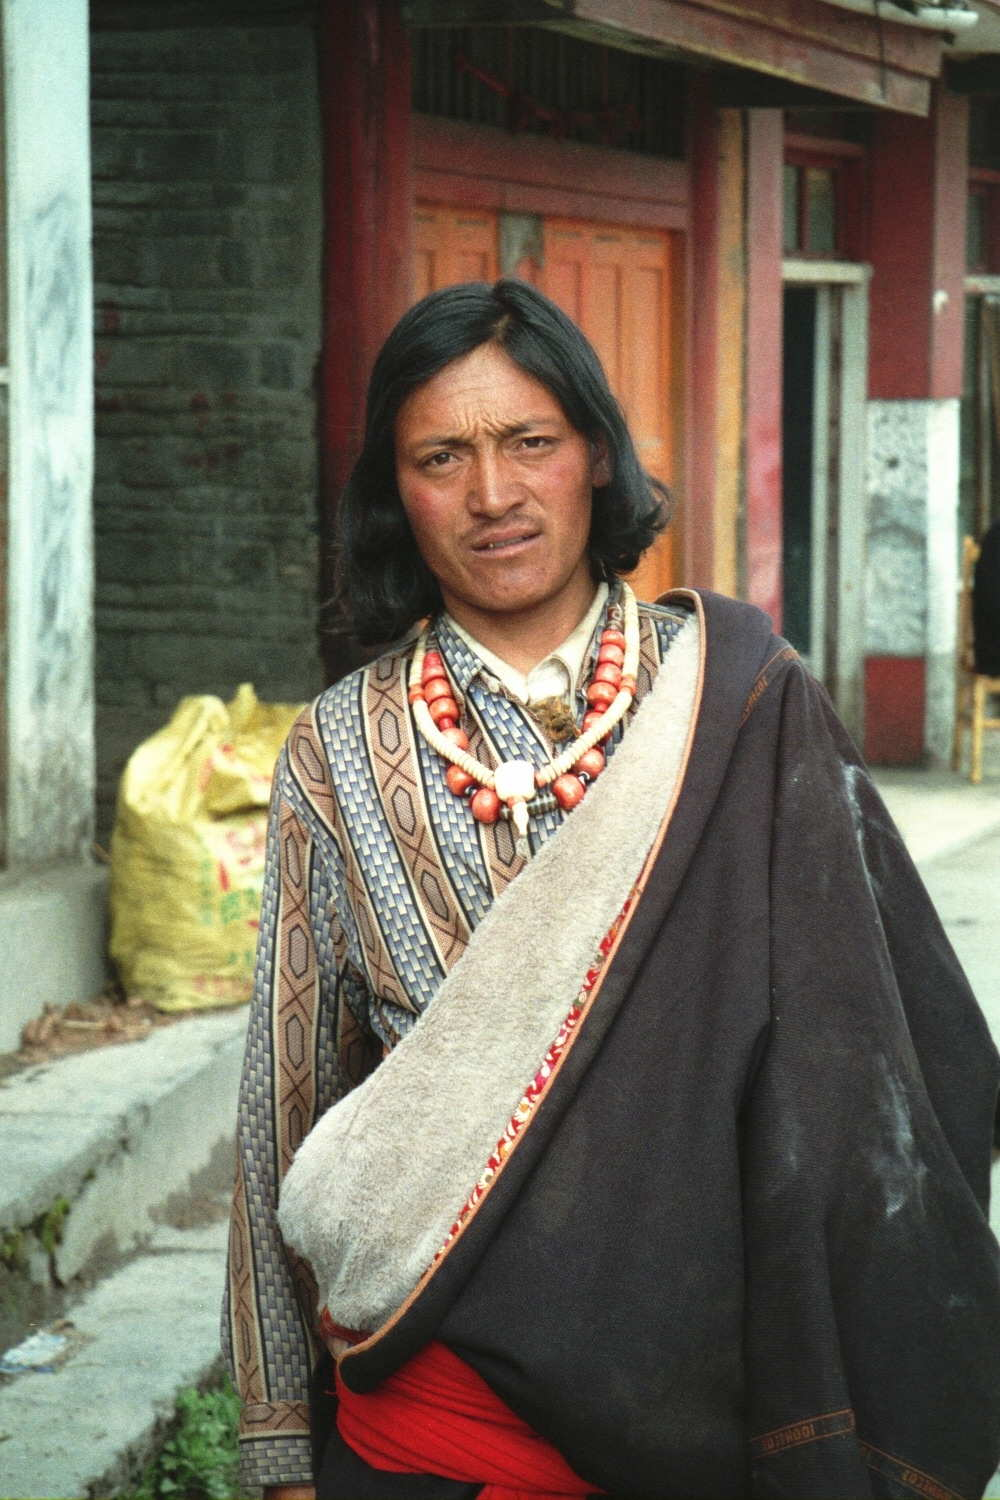 Tibetan man in Yunnan Province, China.